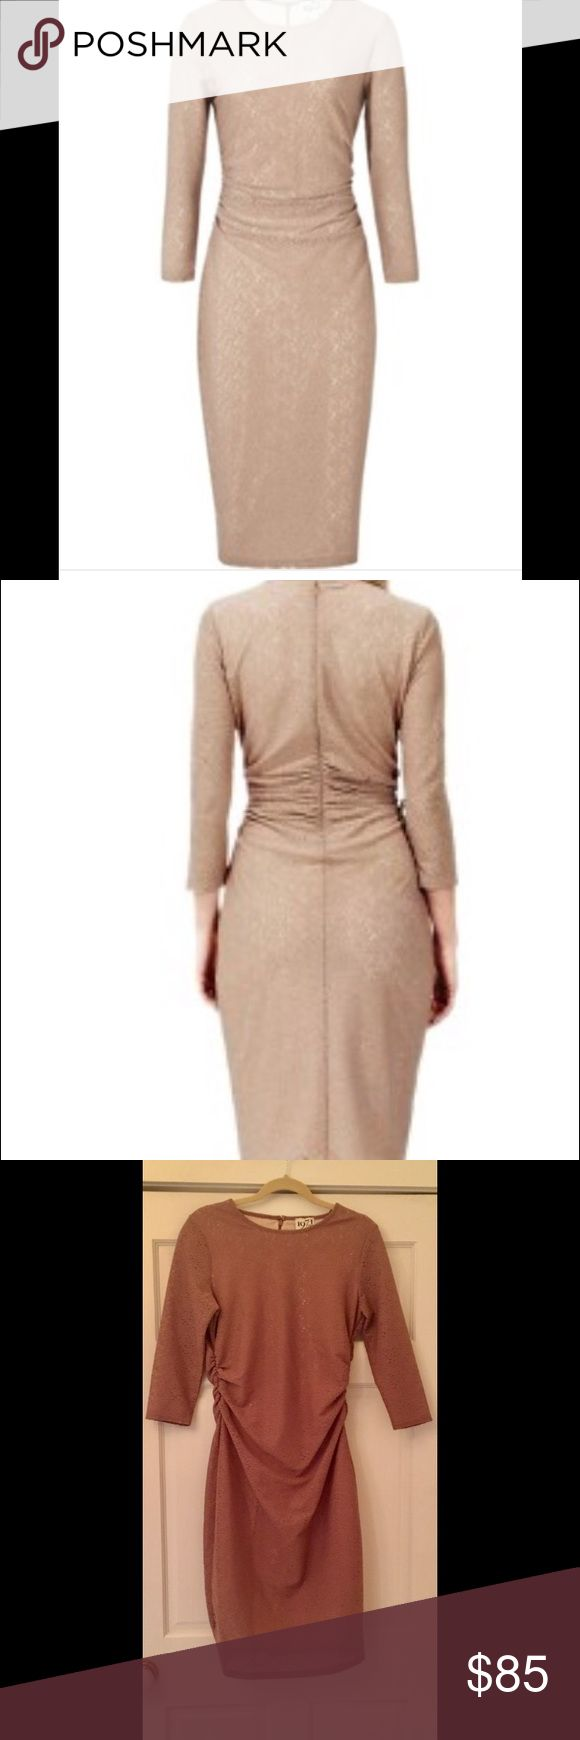 REISS ZOE FITTED RUCHED WAIST ZOE DRESS EUC $495 REISS ZOE FITTED RUCHED WAIST ZOE LONG SLEEVE DRESS SZ 8 $495  In excellent pre-owned condition - worn once Glam up your wardrobe with 1971 Reiss' textured, sheer, dress Set on a neutral base and fastening with a concealed back zip, flattering ruching across the waist adds impact to the body con shape Sz 8 Color: Soft Cappuccino (a flattering, versatile nude/ tan) Material 100% polyester  Neckline: Round  Shape: Bodycon / Fitted ¾ Sleeve…